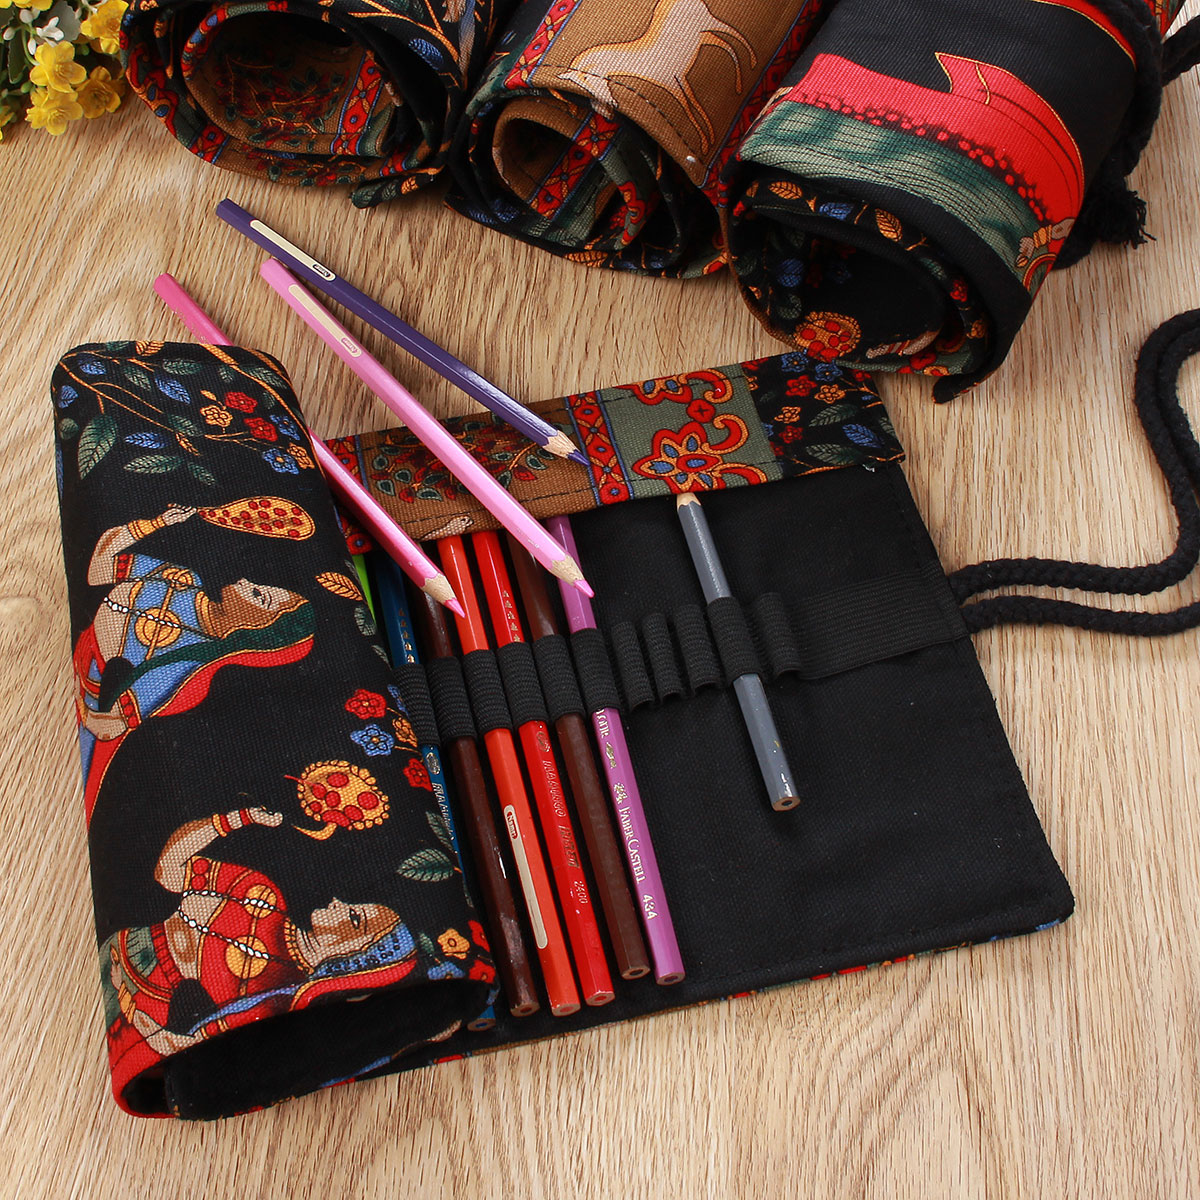 36/48/60/72 Canvas Drawing Brush Bag Pencil Pen Roll Wrap Holder Colored Case, 36Holes color